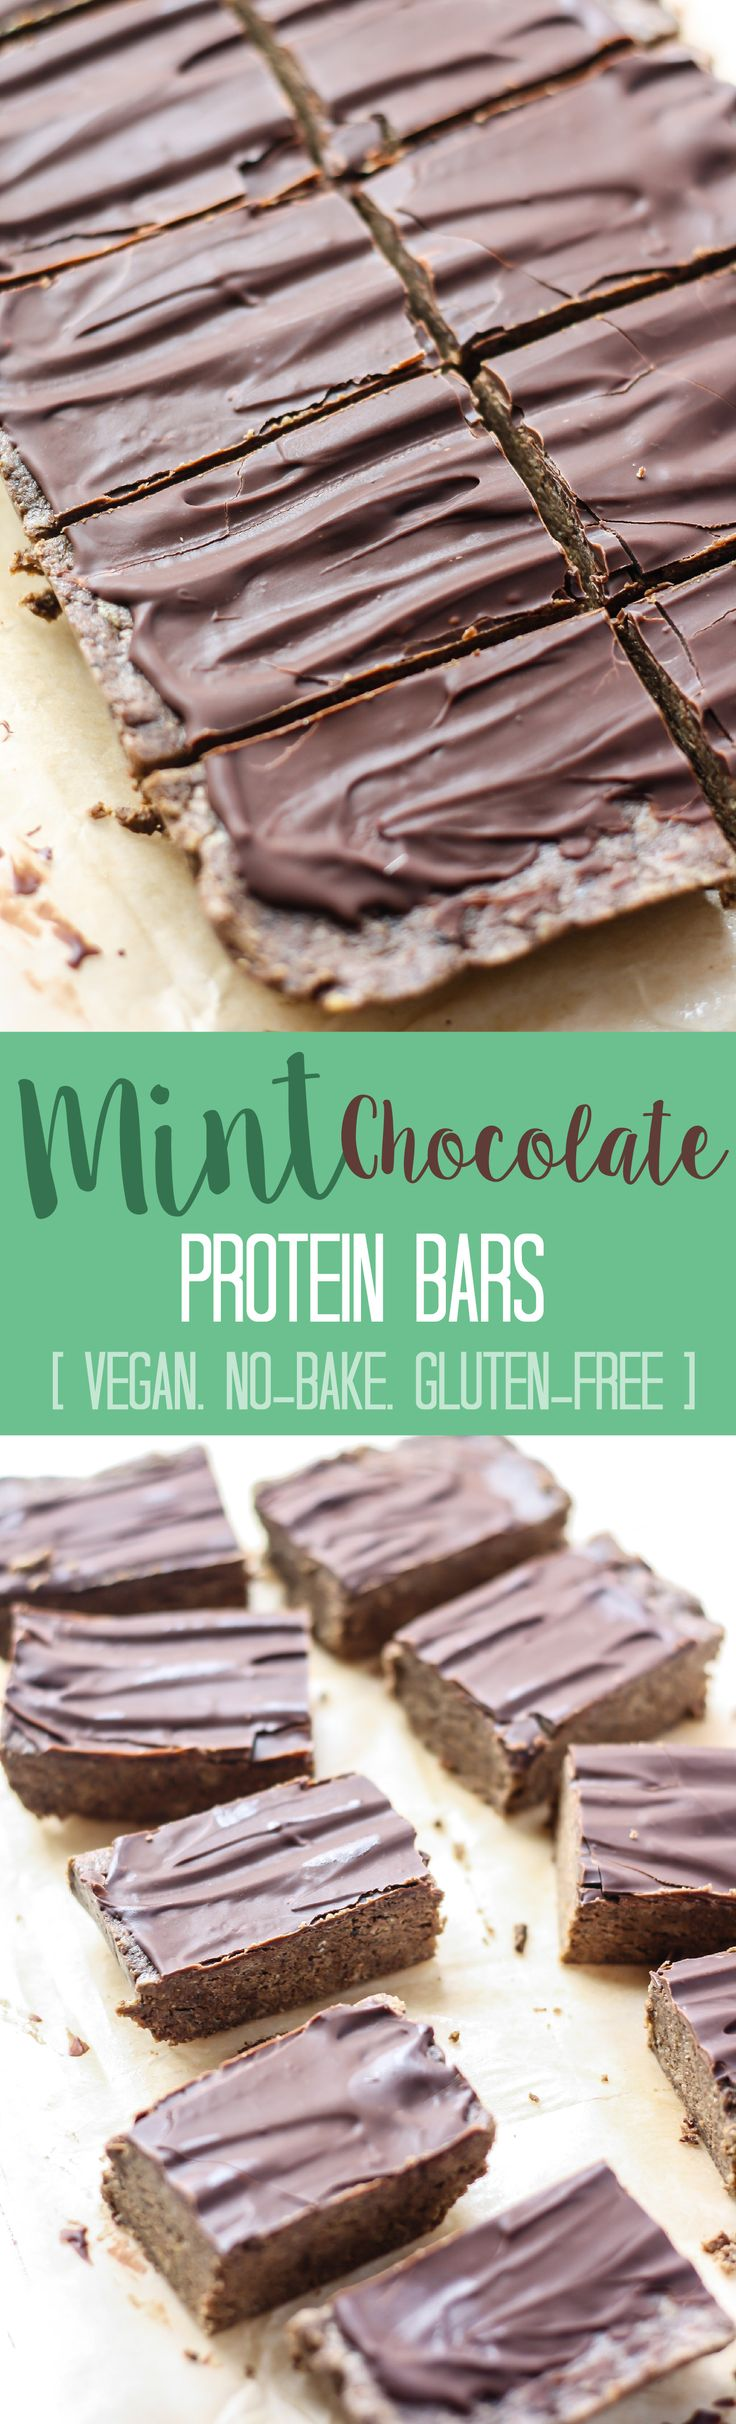 Mint Chocolate Protein Bars [no-bake, vegan]